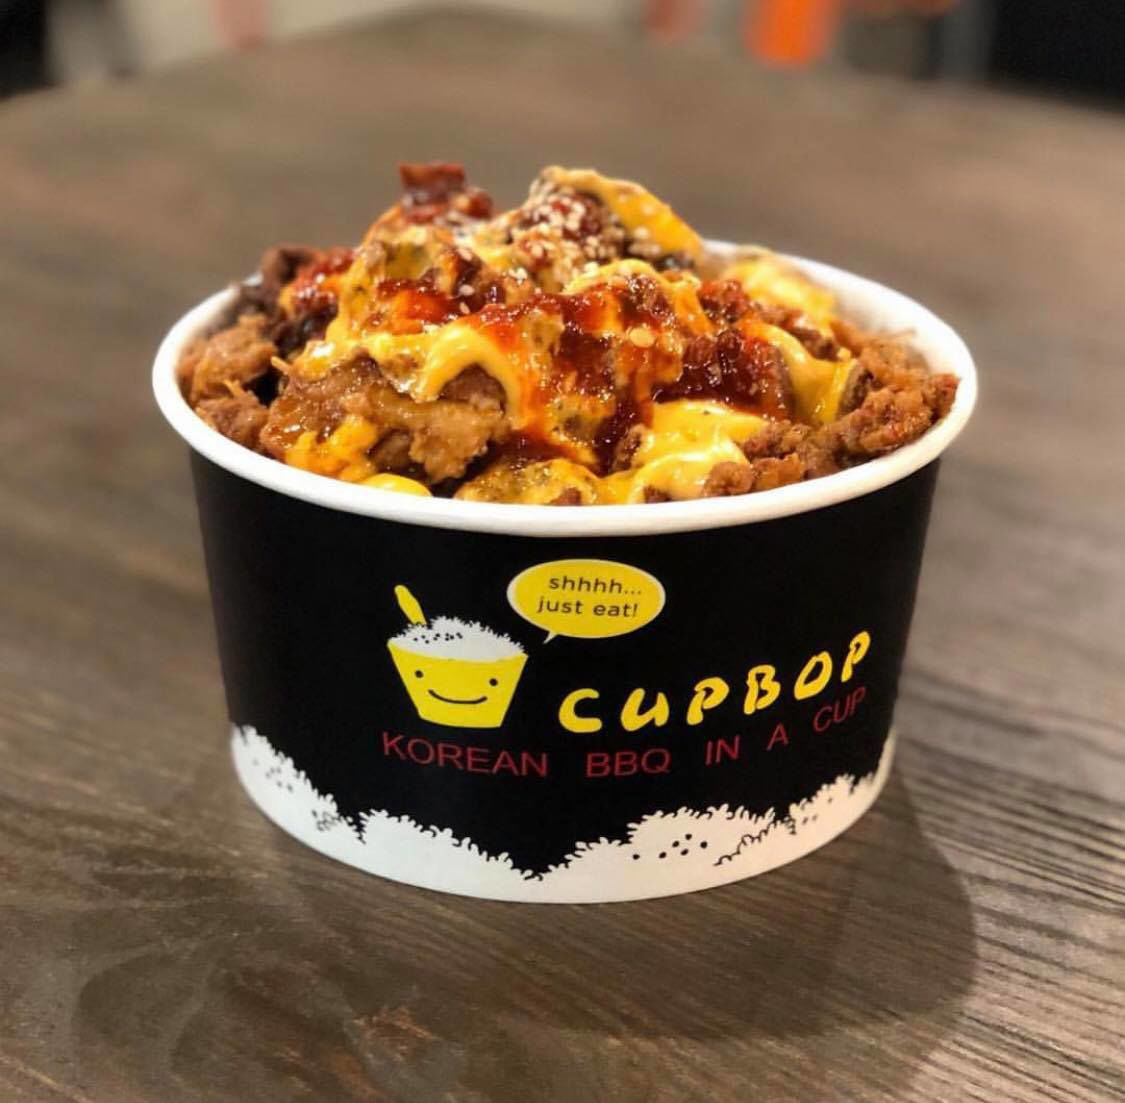 Korean Bbq Restaurant Cupbop Coming To Nampa Local News